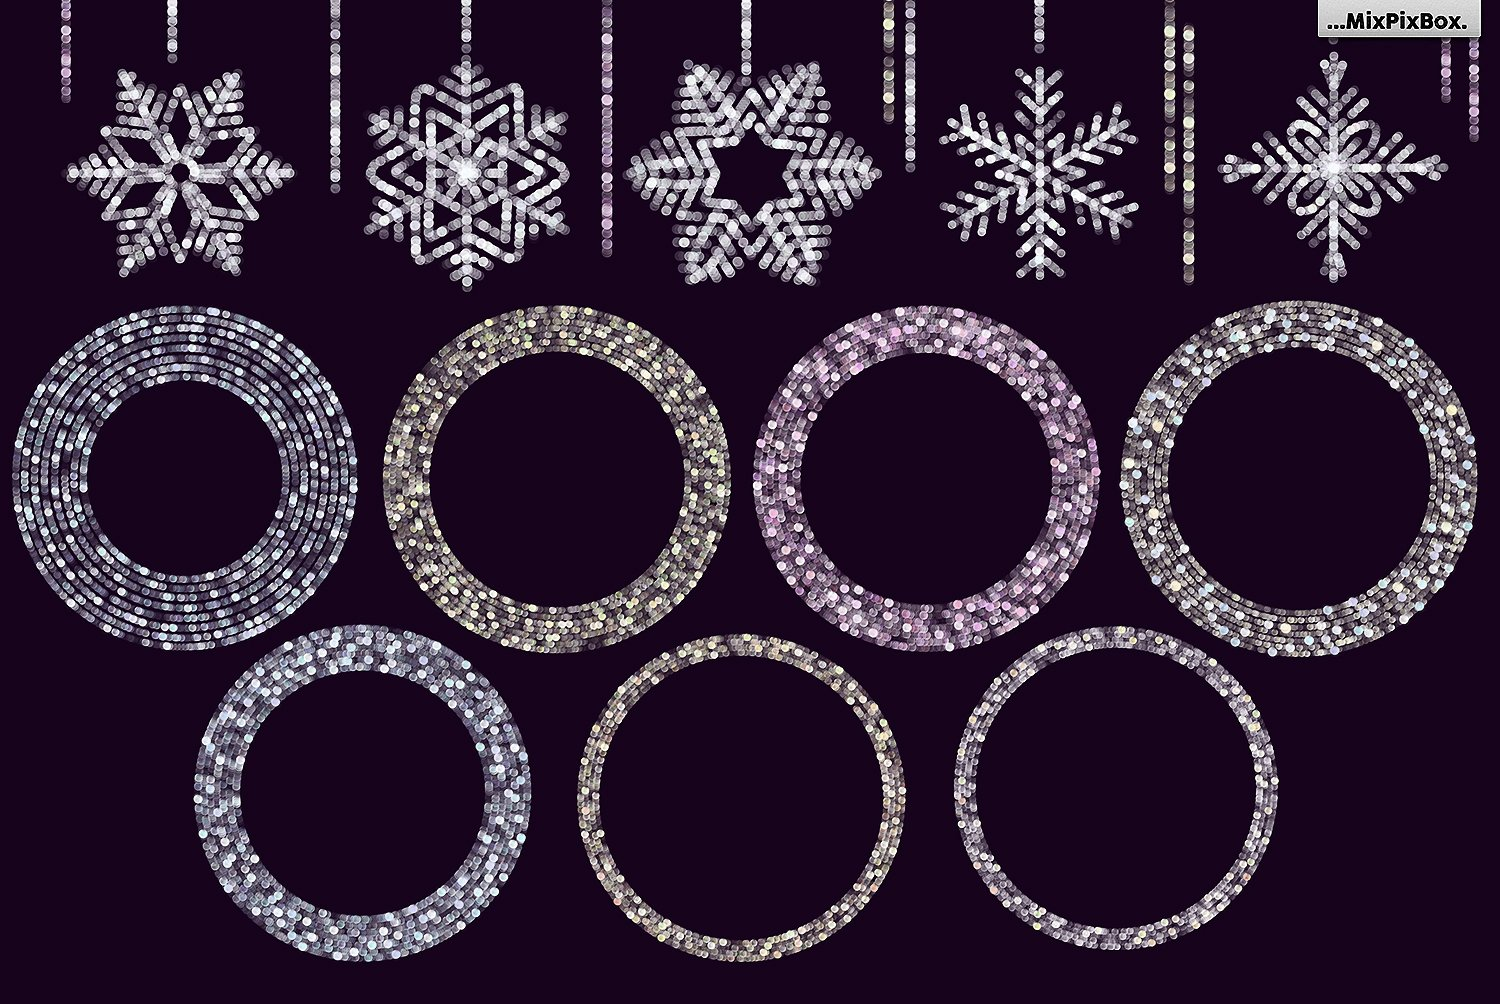 Snowflakes clipart and backgrounds example image 4